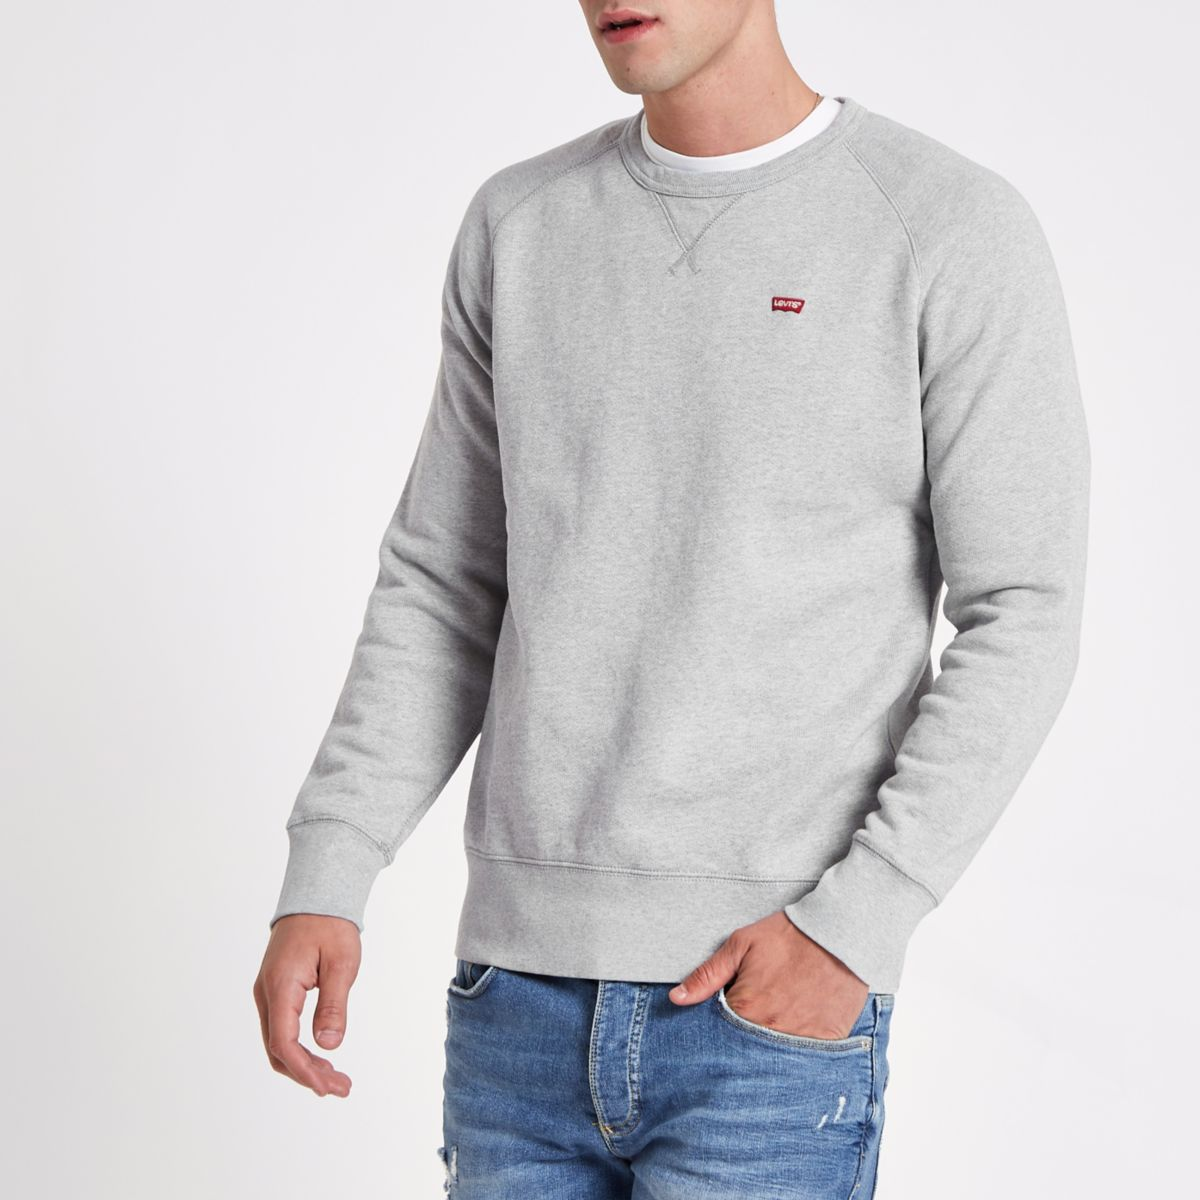 Levi's grey crew neck sweatshirt